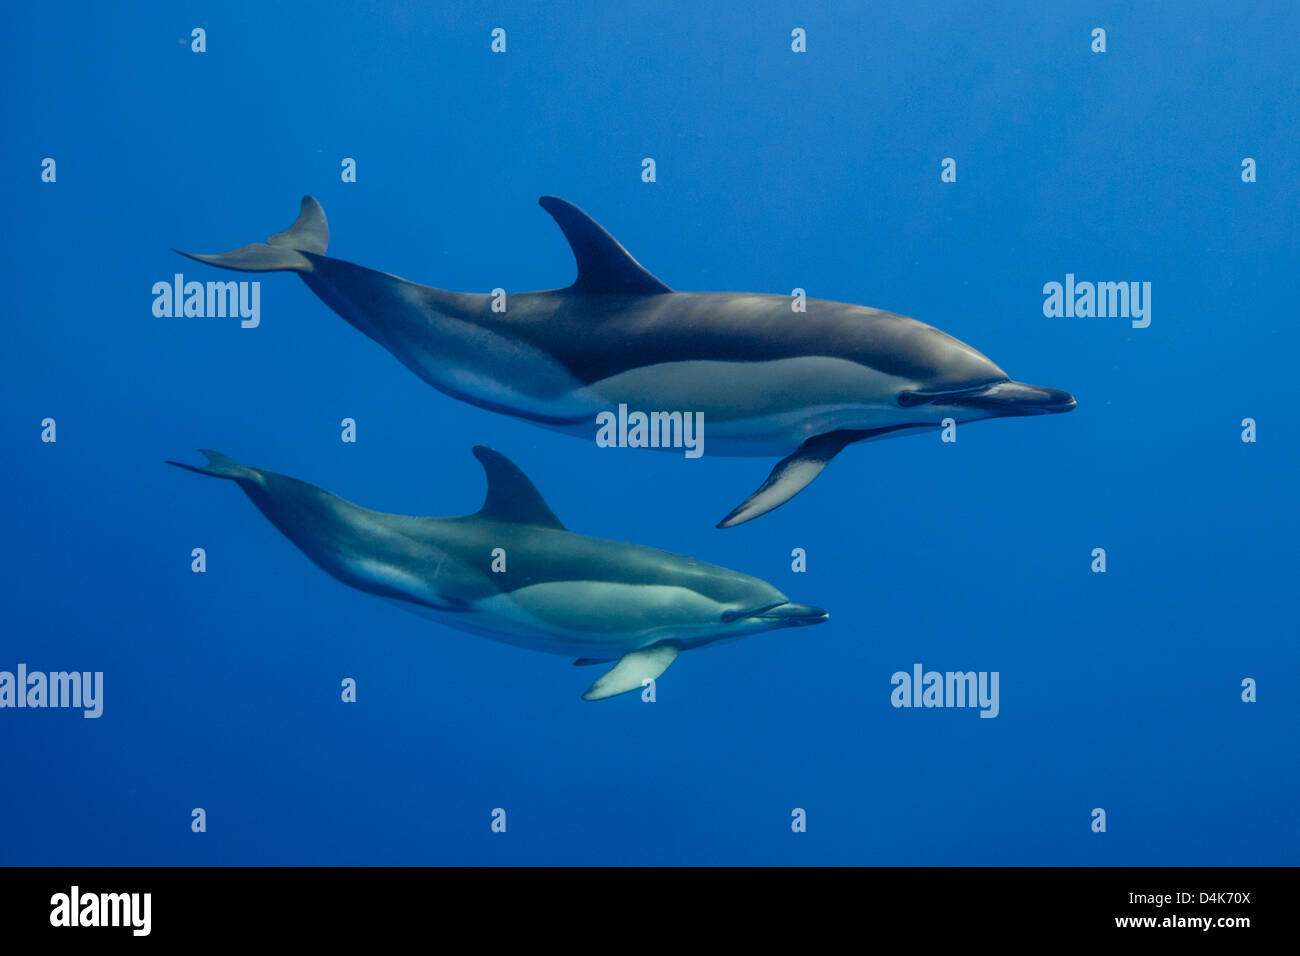 Dolphins swimming underwater - Stock Image